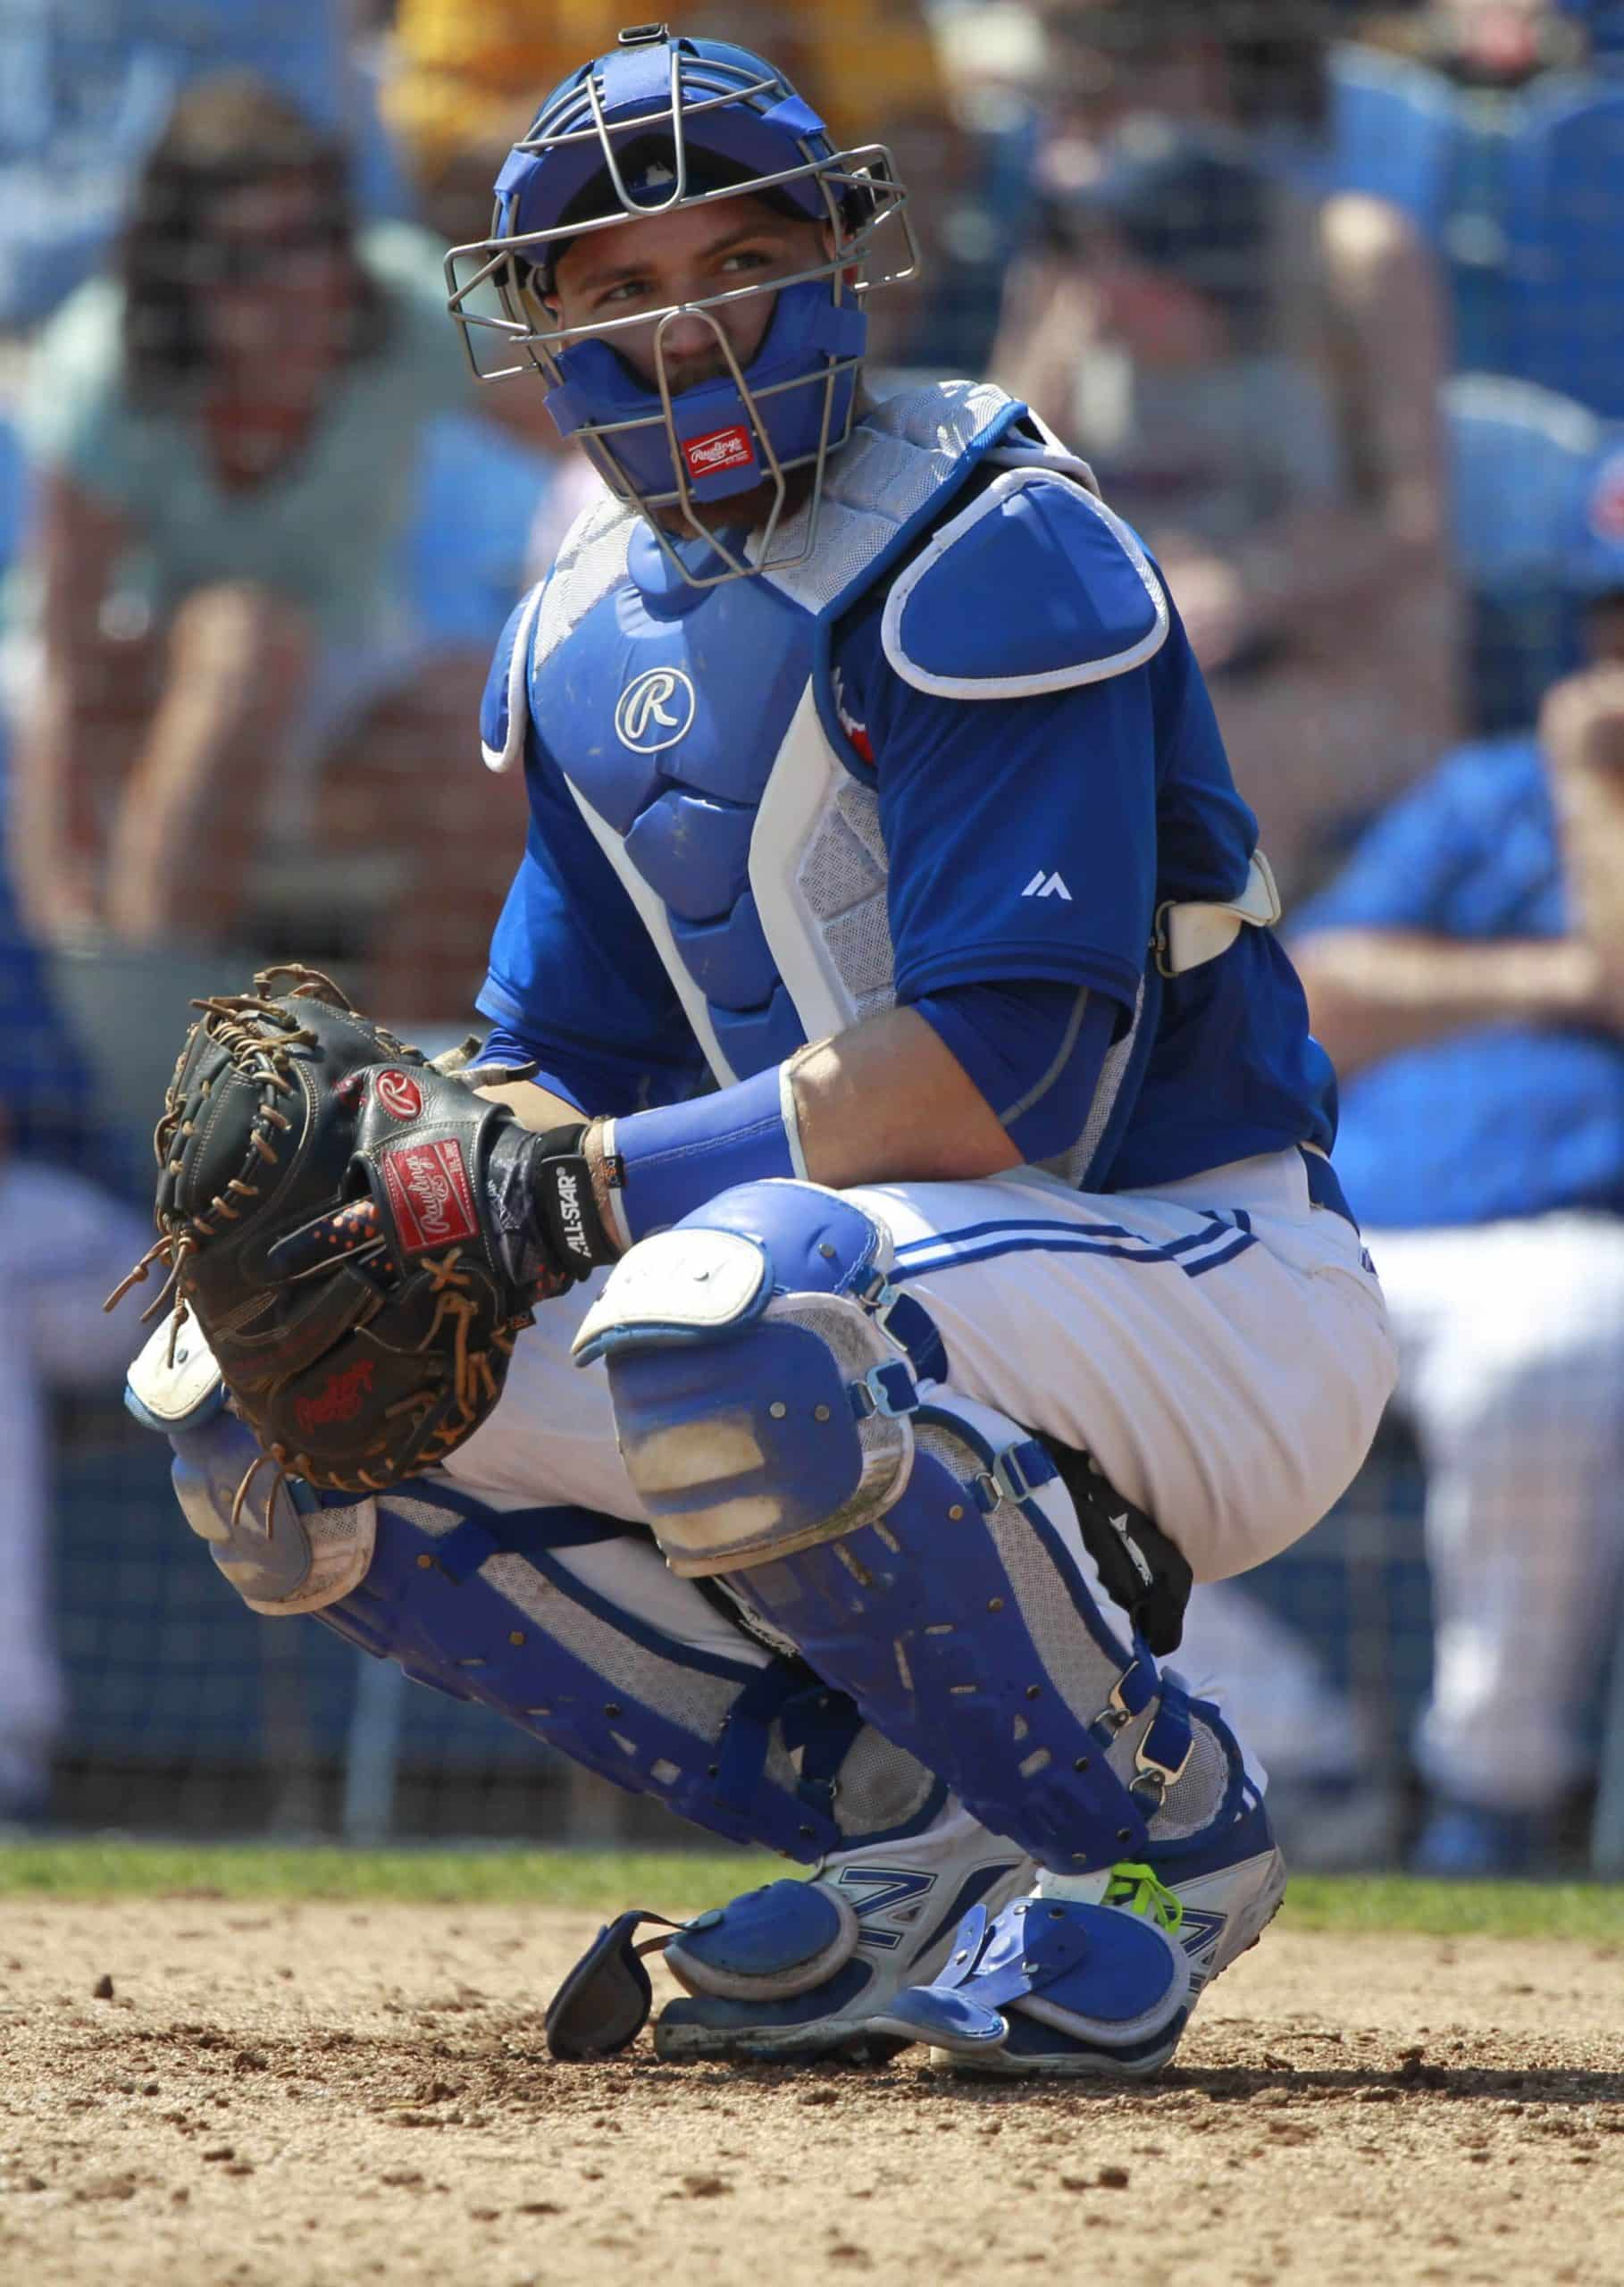 Former Toronto Blue Jays catcher Russell Martin during spring training